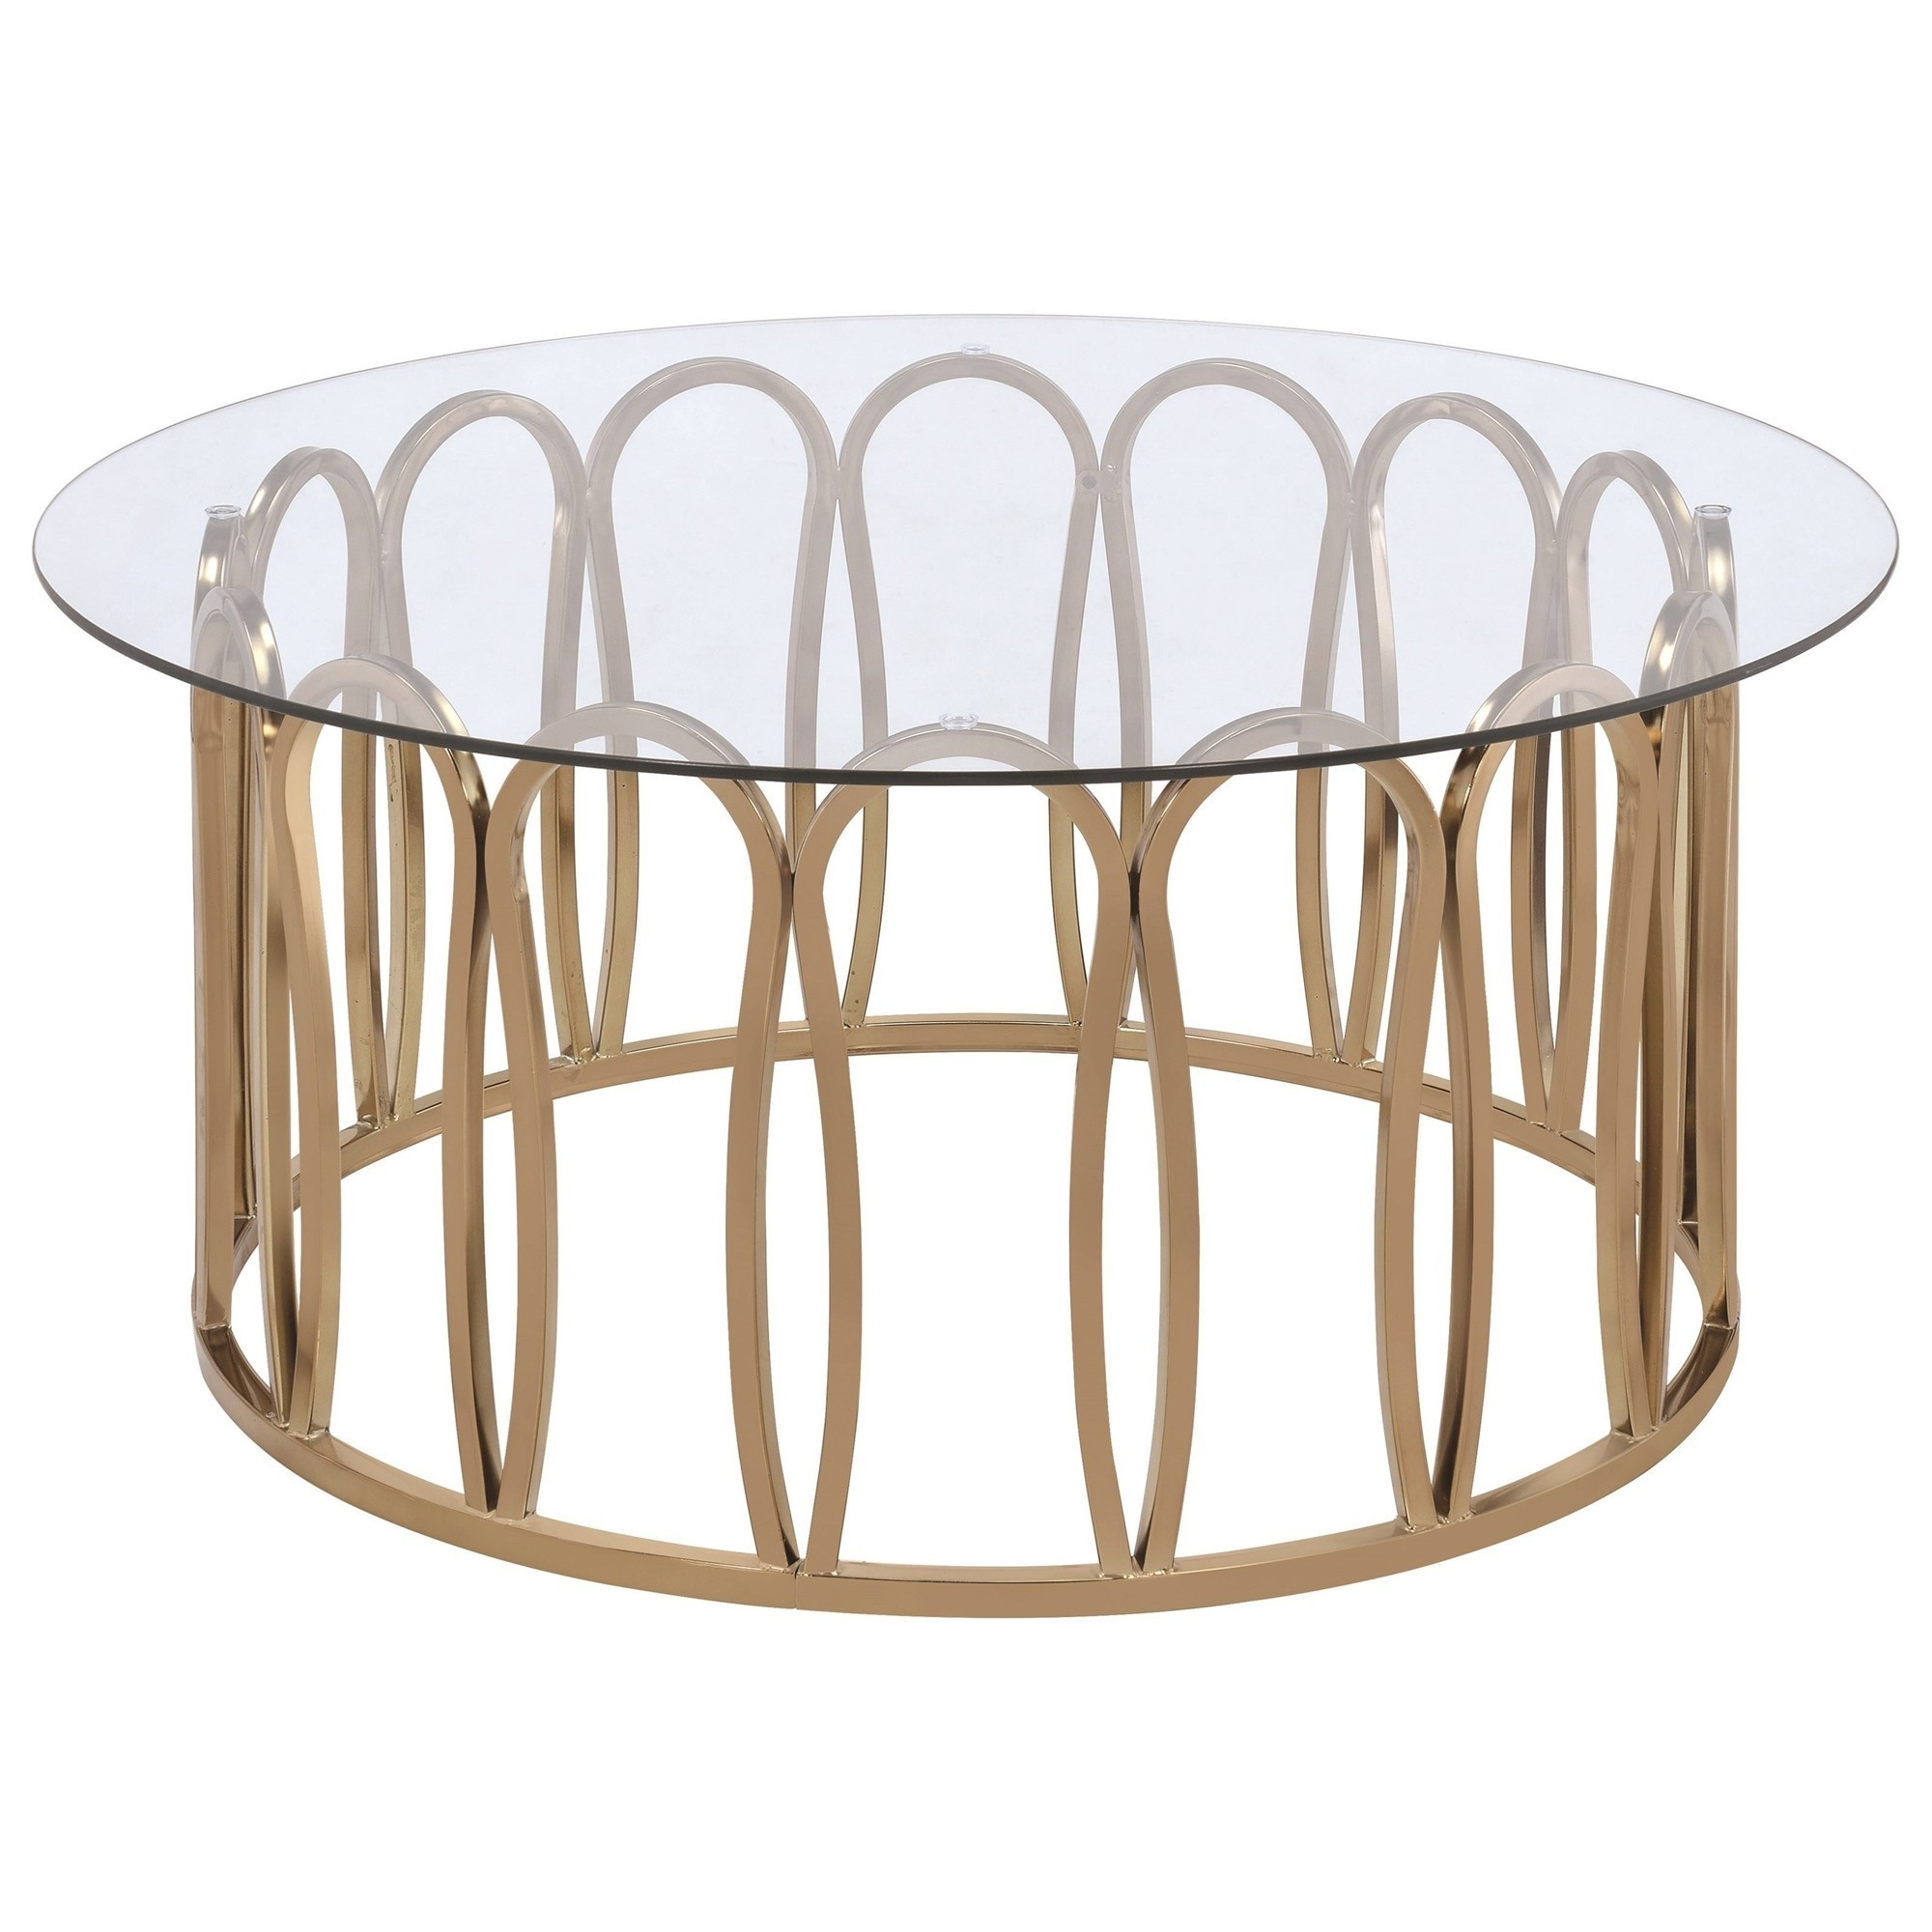 11 Lovely Metal Coffee Table Sets Pertaining To Most Recent Potomac Adjustable Coffee Tables (View 5 of 20)